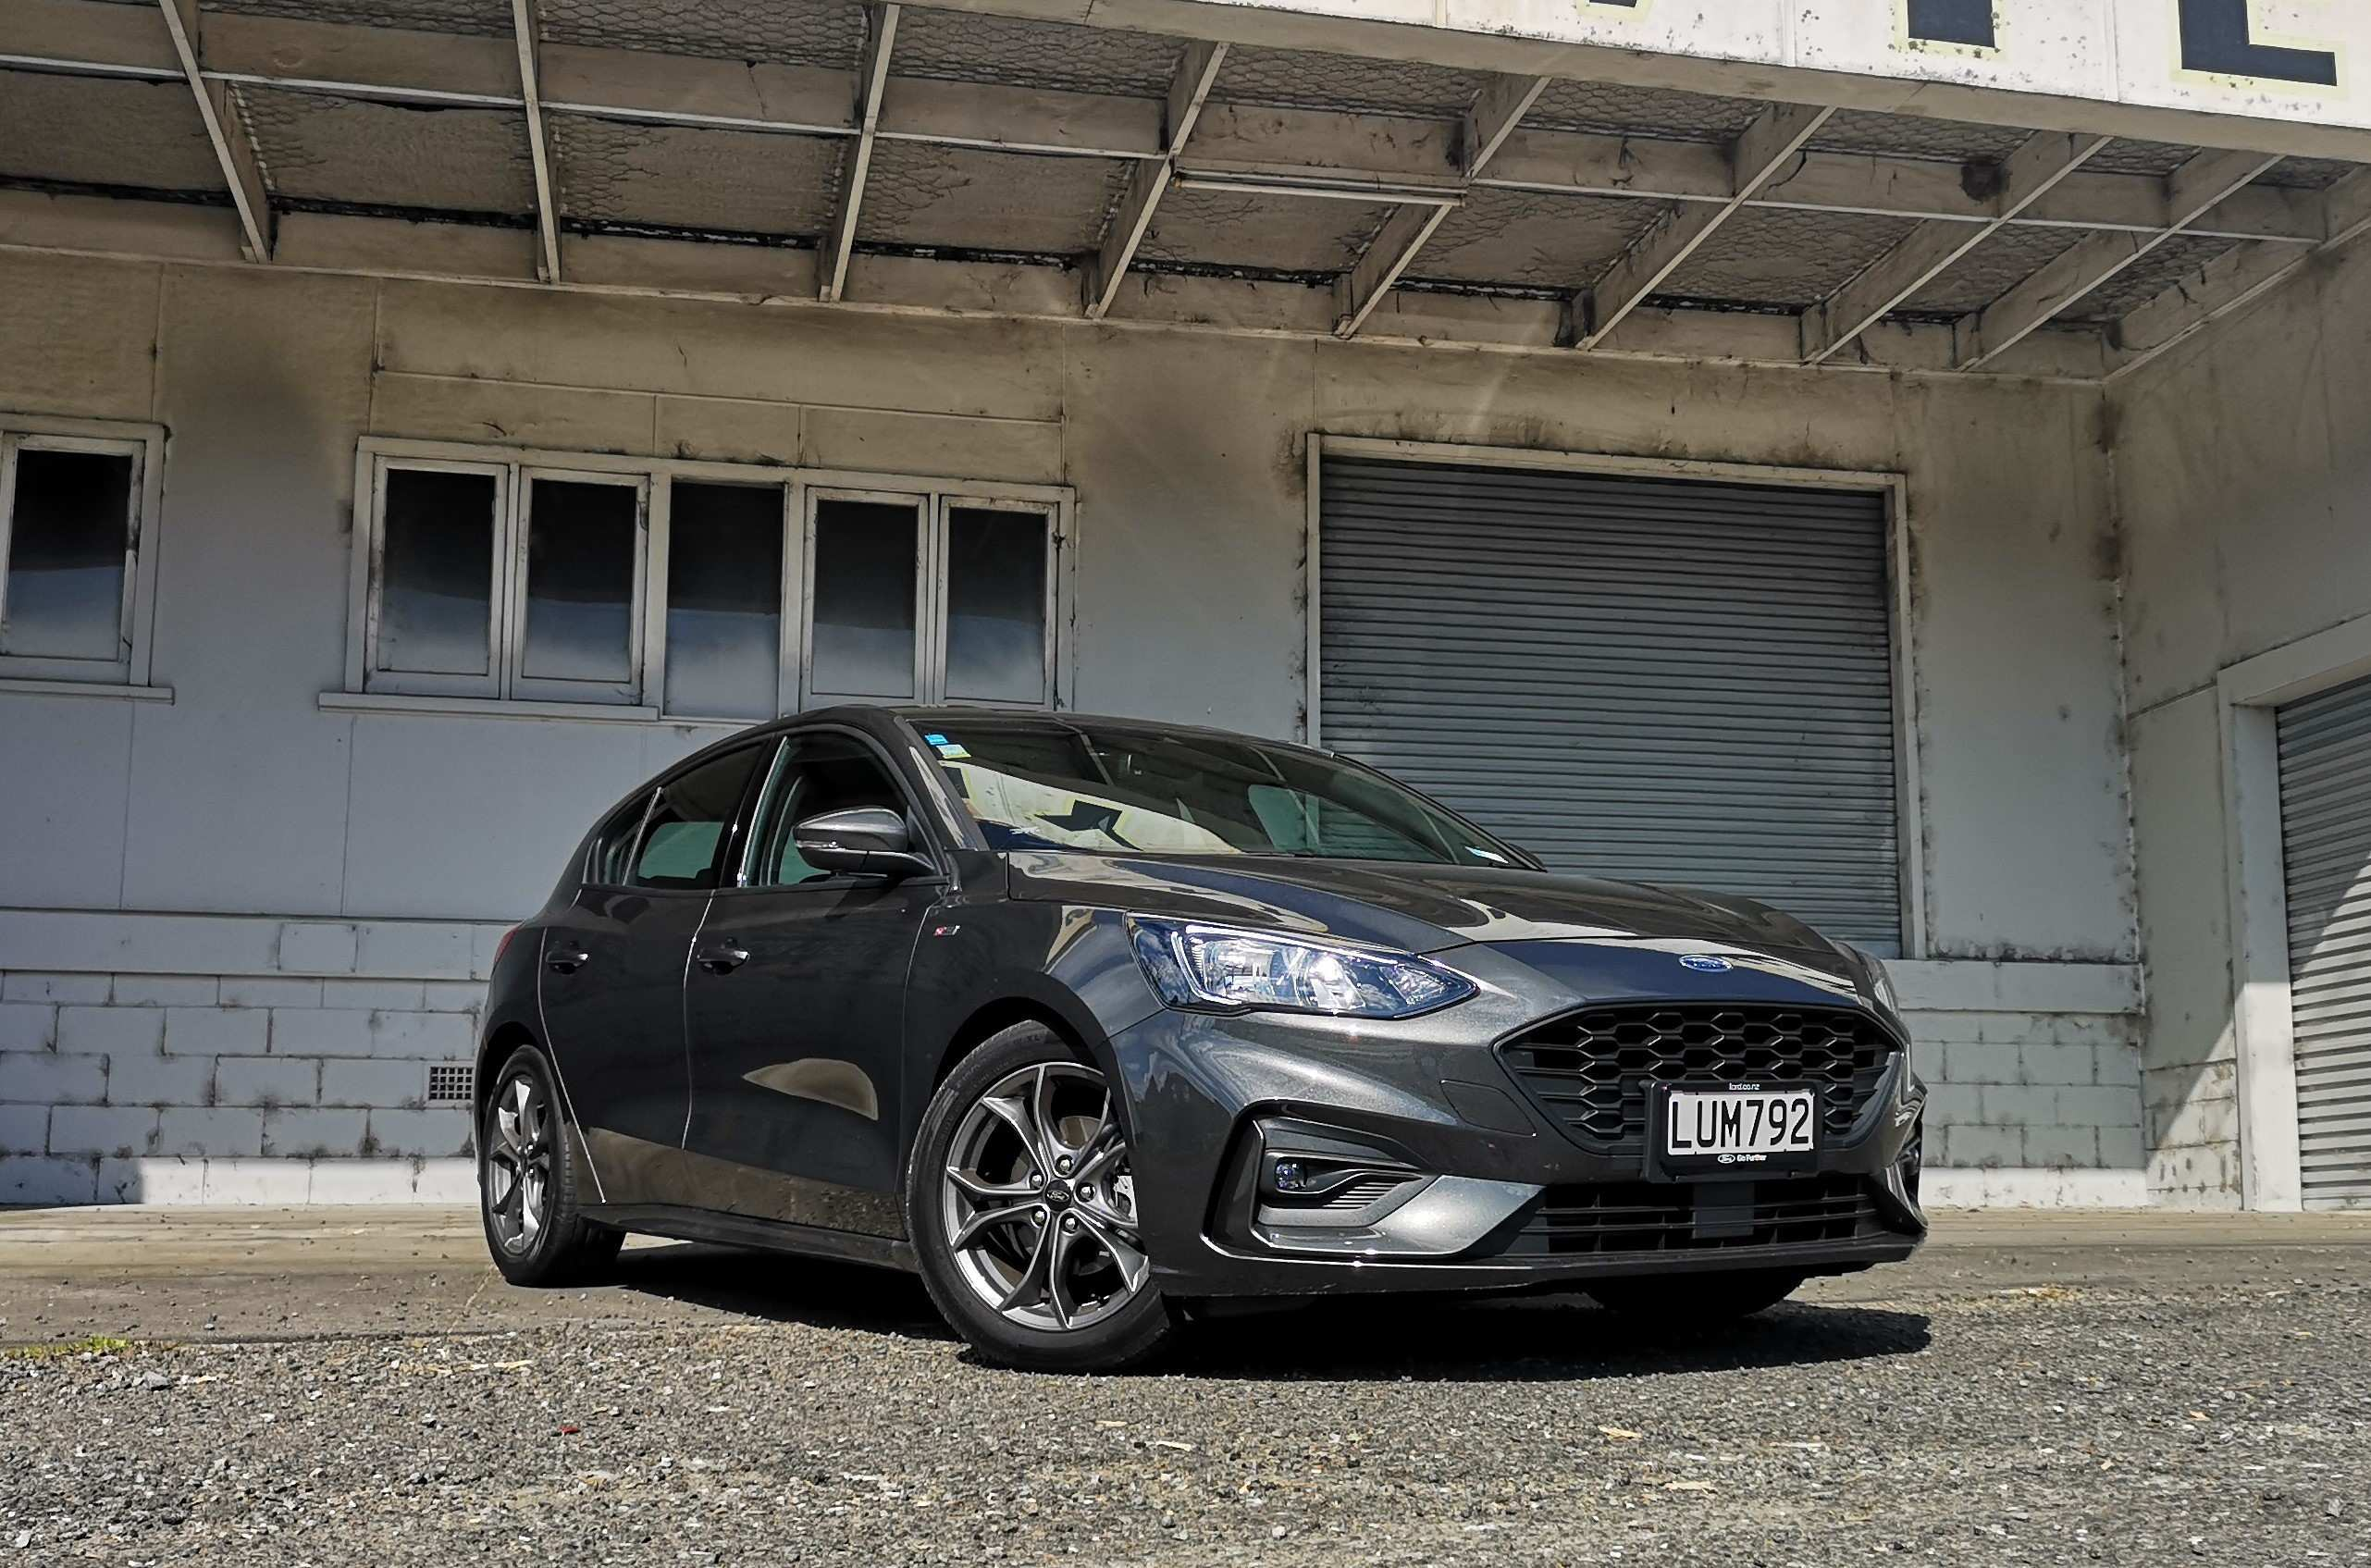 45 All New The 2019 Ford Focus New Zealand Release Speed Test by The 2019 Ford Focus New Zealand Release